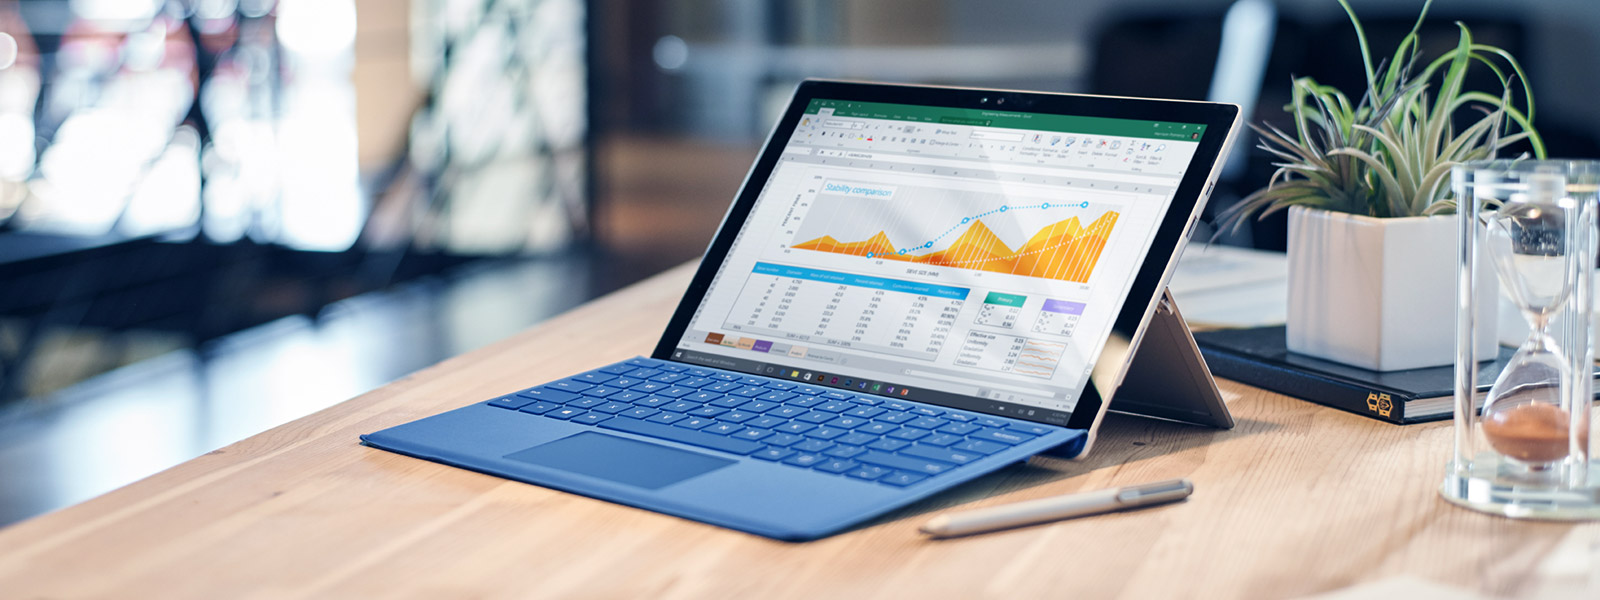 Surface Pro 4 with Excel spreadsheet on screen, sitting on a wooden table.